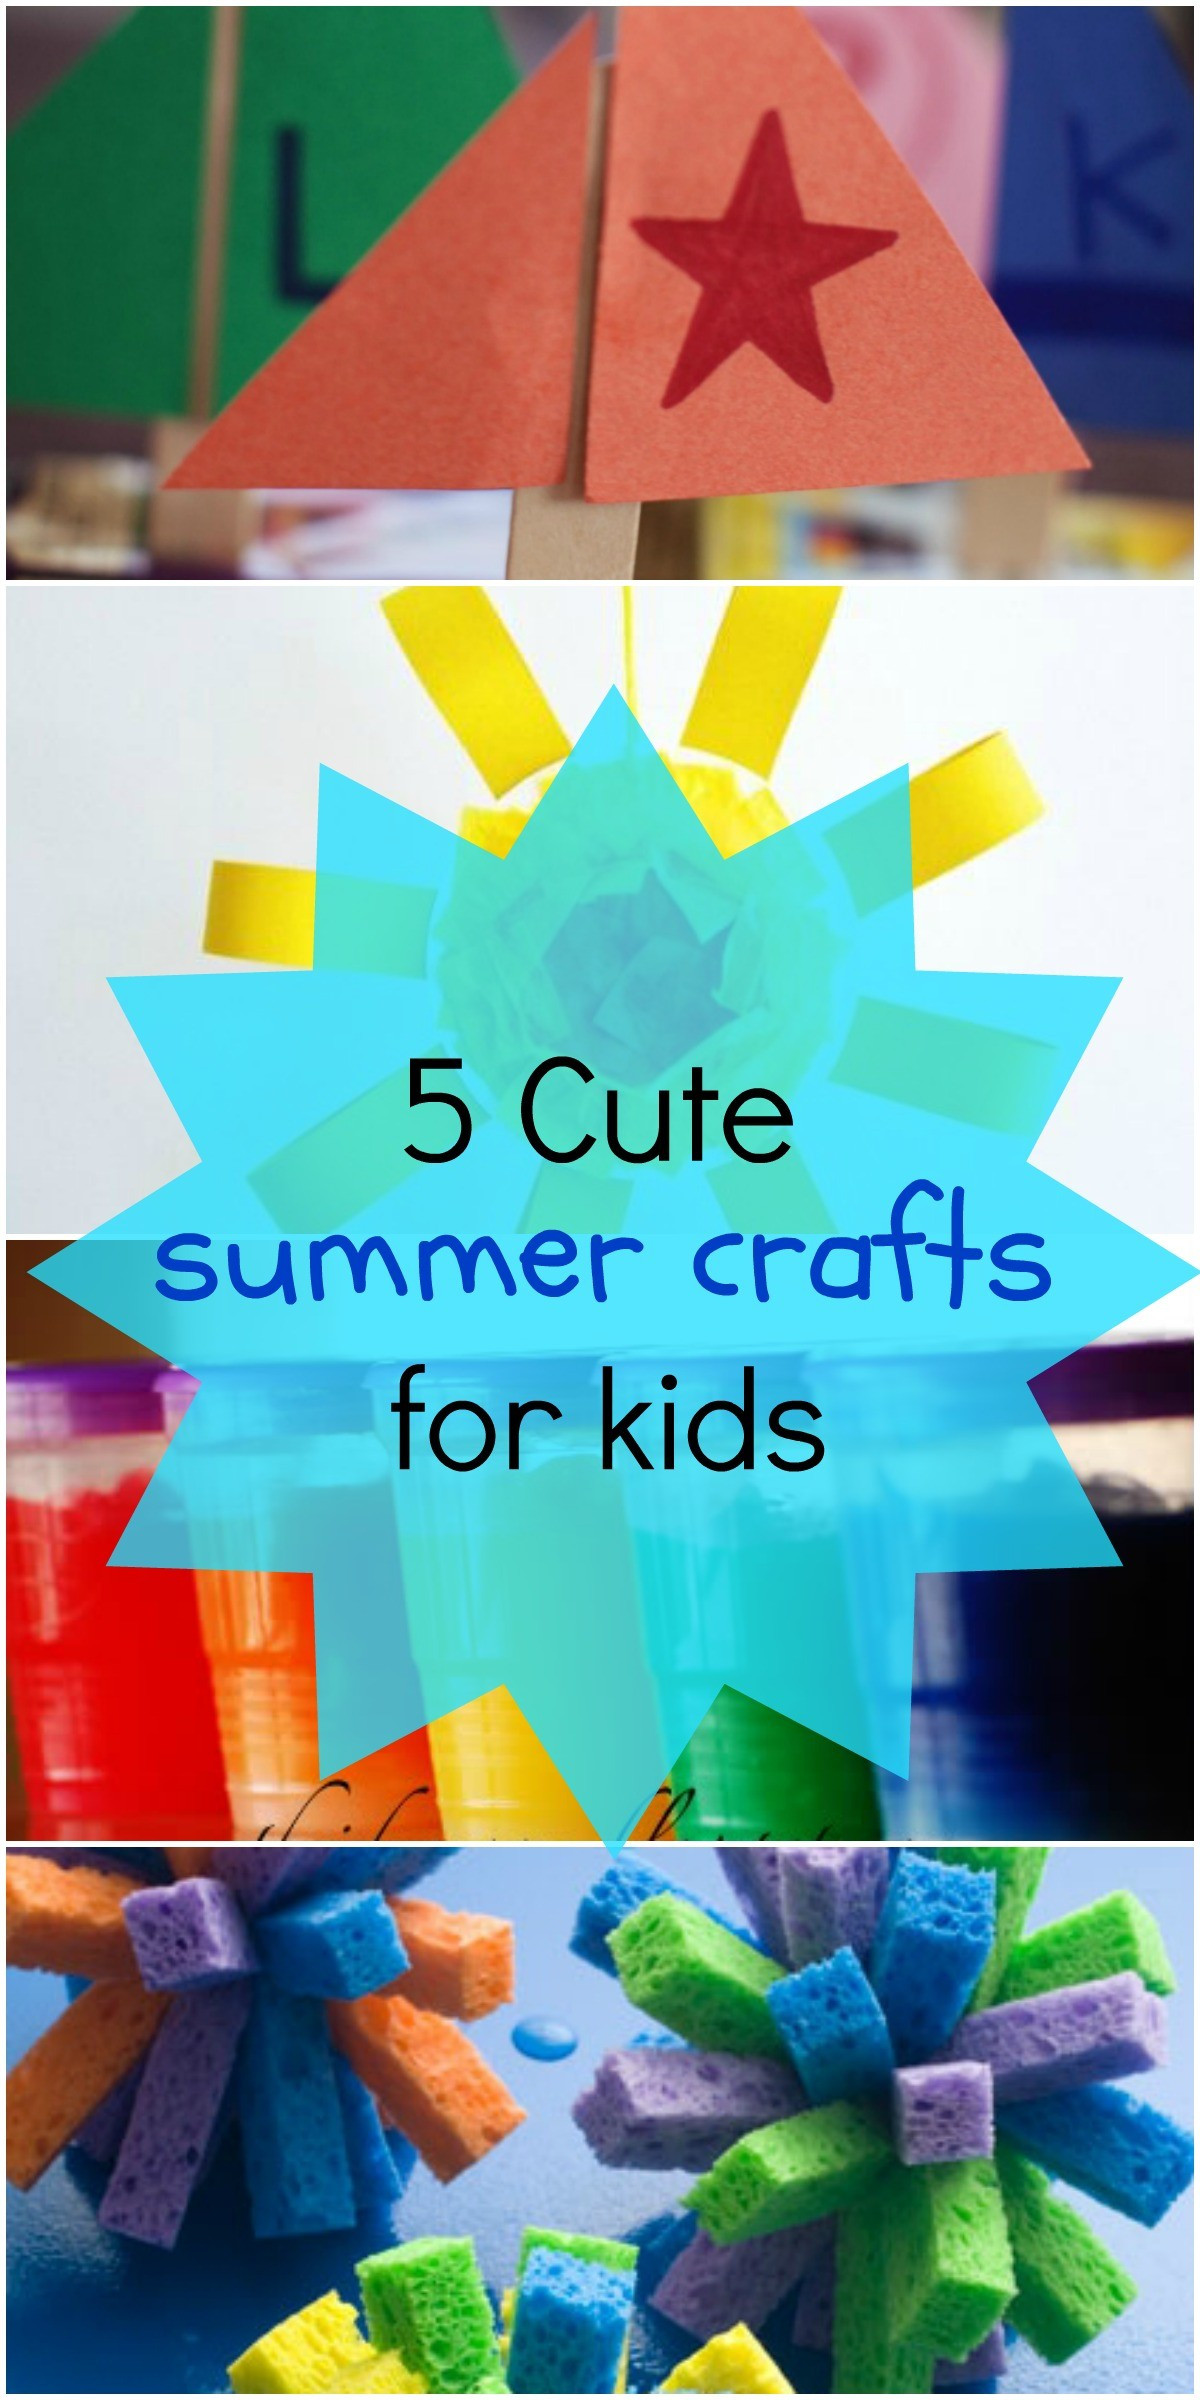 Summer Art Project For Kids  5 Fun Summer Crafts for Kids Love These Art Project Ideas